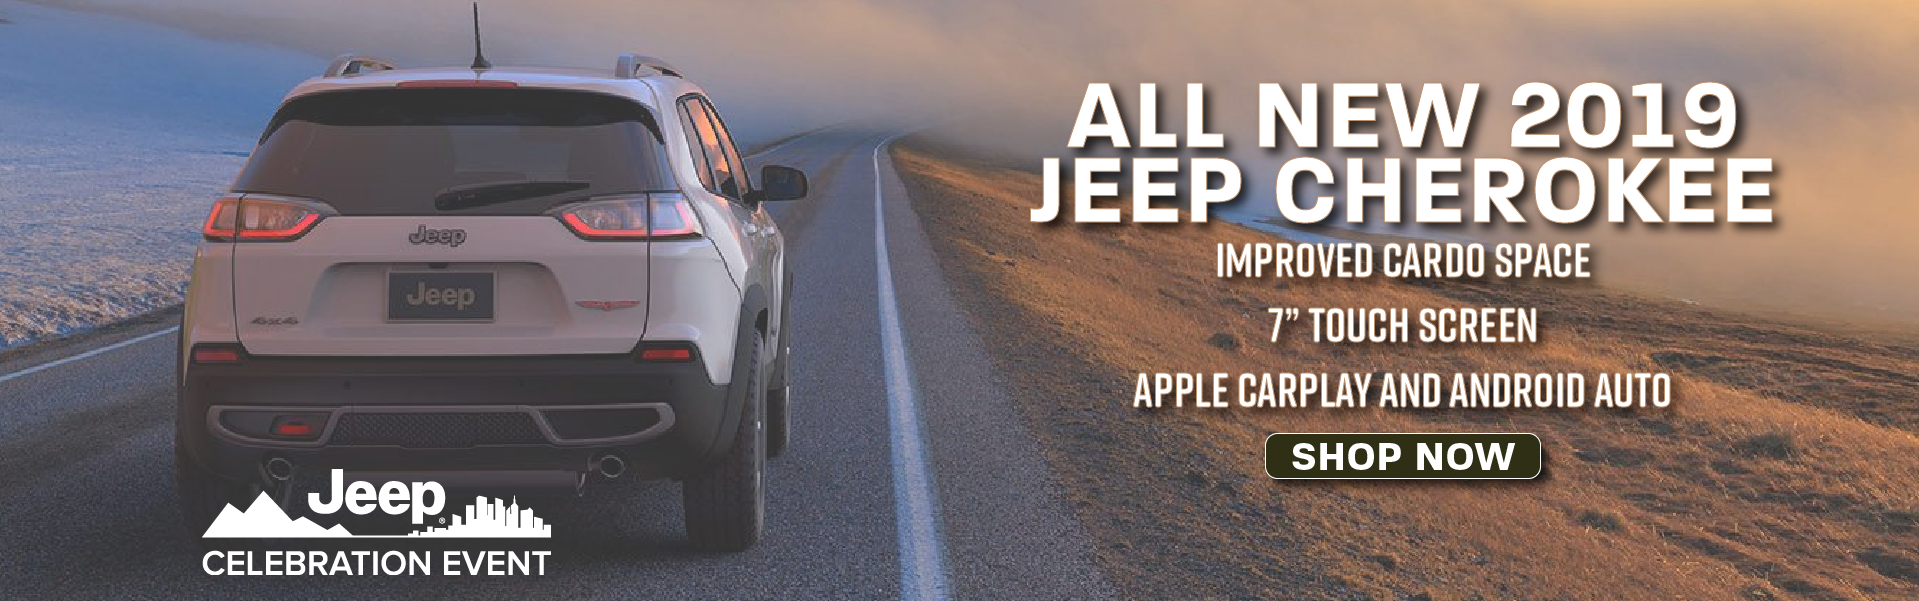 All New 2019 Jeep Cherokee Banner